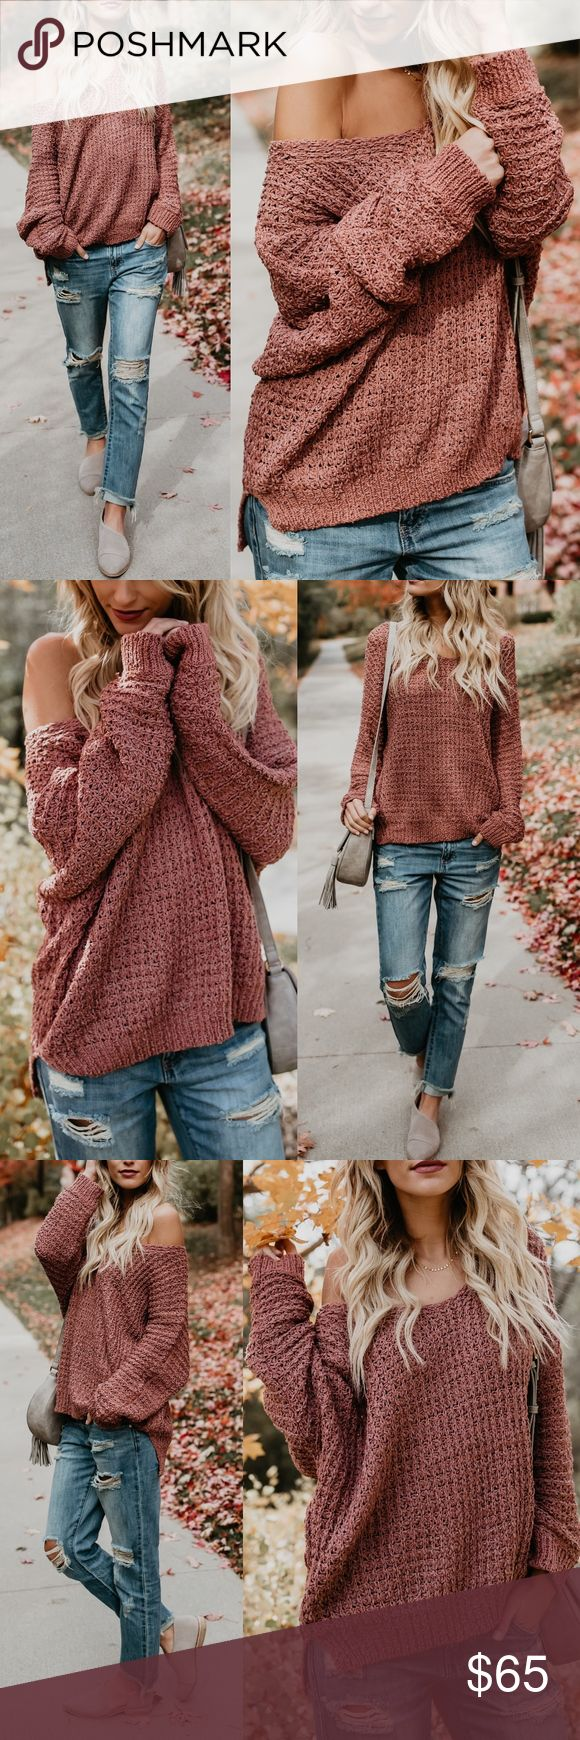 "NYA Cuddly Sweater - MARSALA * V-Neck * Not Lined * Size Small/ Medium: 27"" from shoulder to hem * 55% Cotton and 45% Acrylic  * Model is 5'7"" and wears a Small   NO TRADE PRICE FIRM Bellanblue Sweaters"